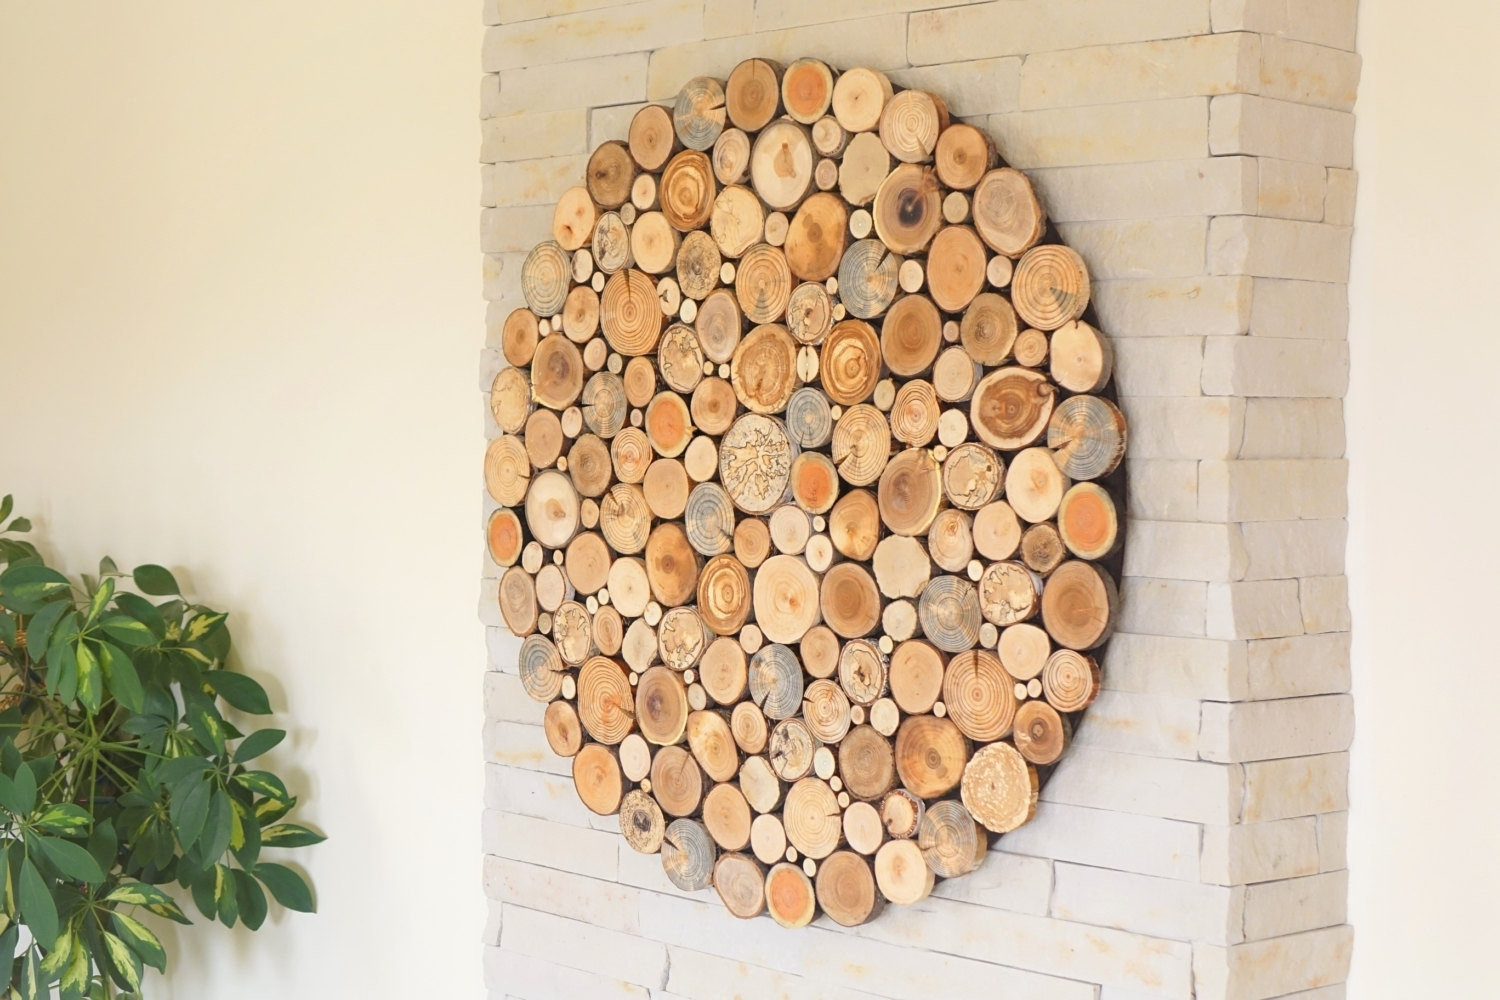 Wood Slice Wall Art Wooden Wall Decoration Purplebirdblog Within Most Popular Wooden Wall Art (View 12 of 15)